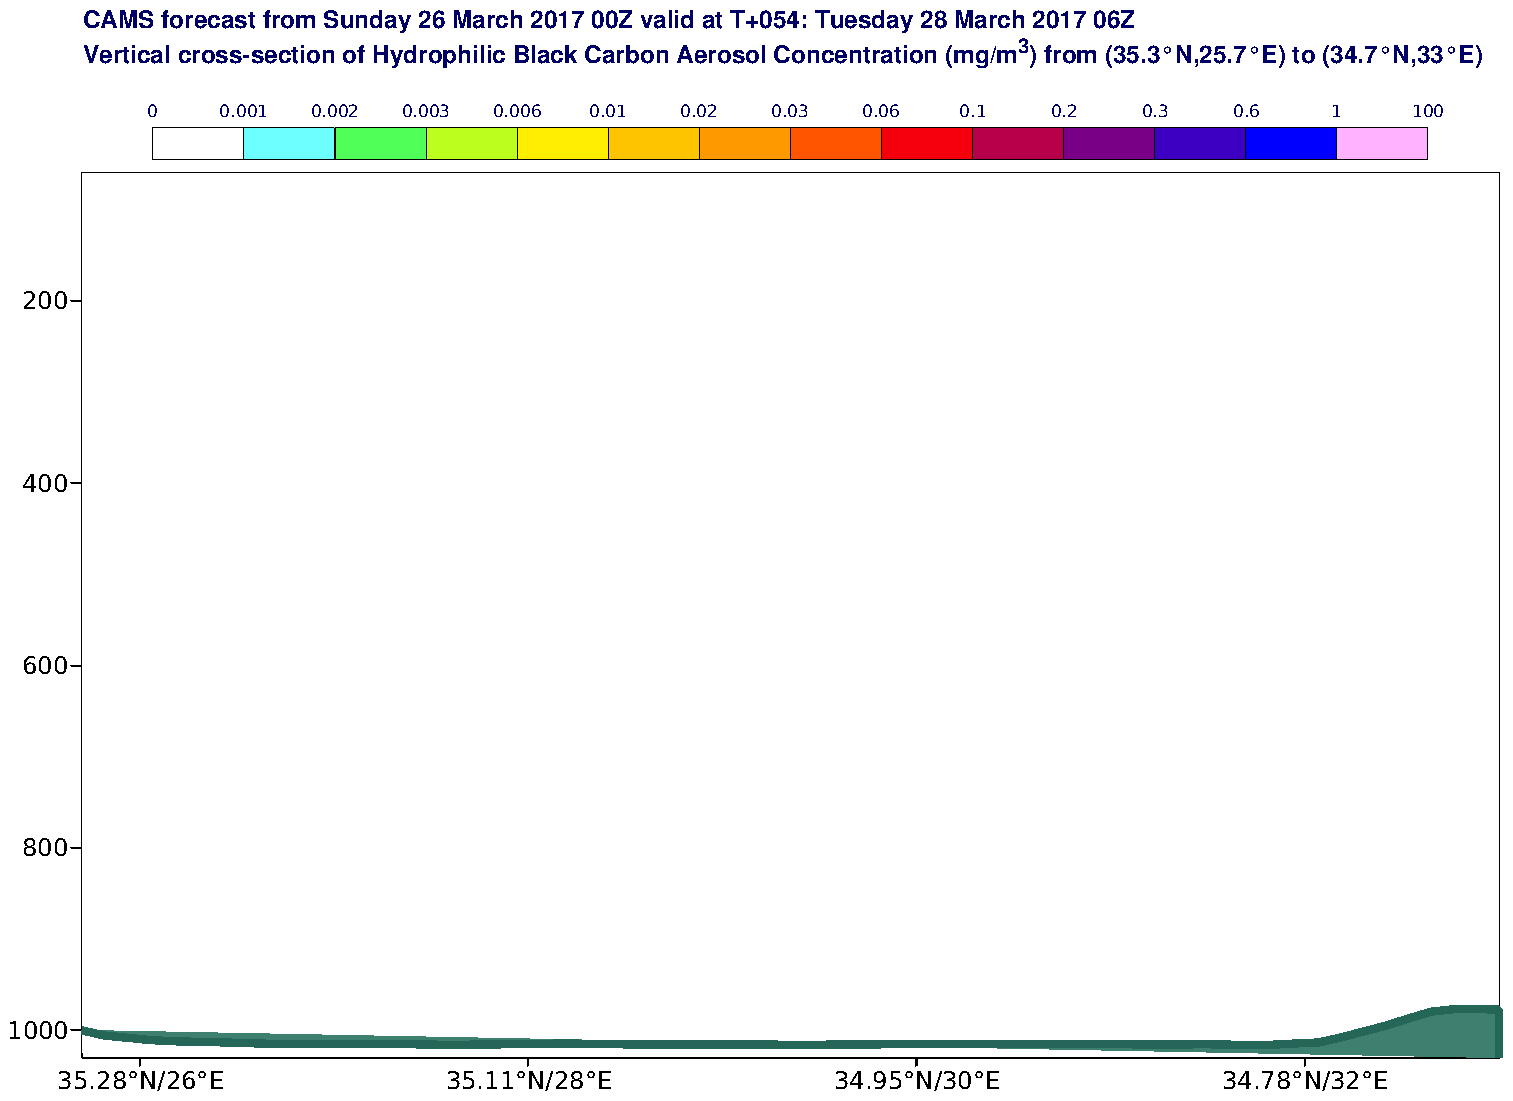 Vertical cross-section of Hydrophilic Black Carbon Aerosol Concentration (mg/m3) valid at T54 - 2017-03-28 06:00